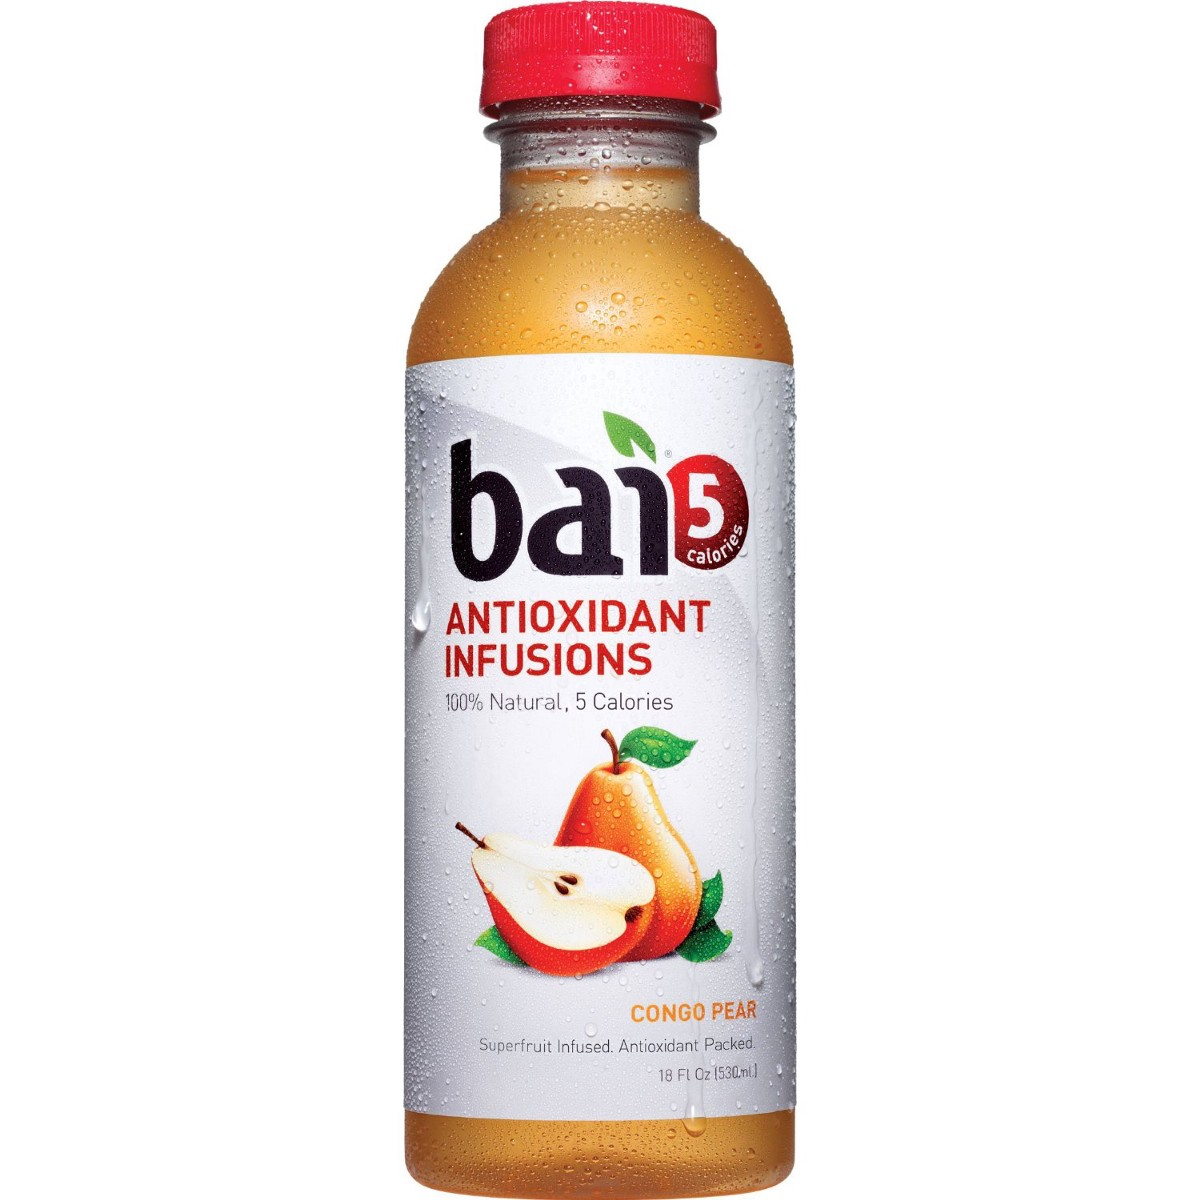 Bai Drink Make You Poop